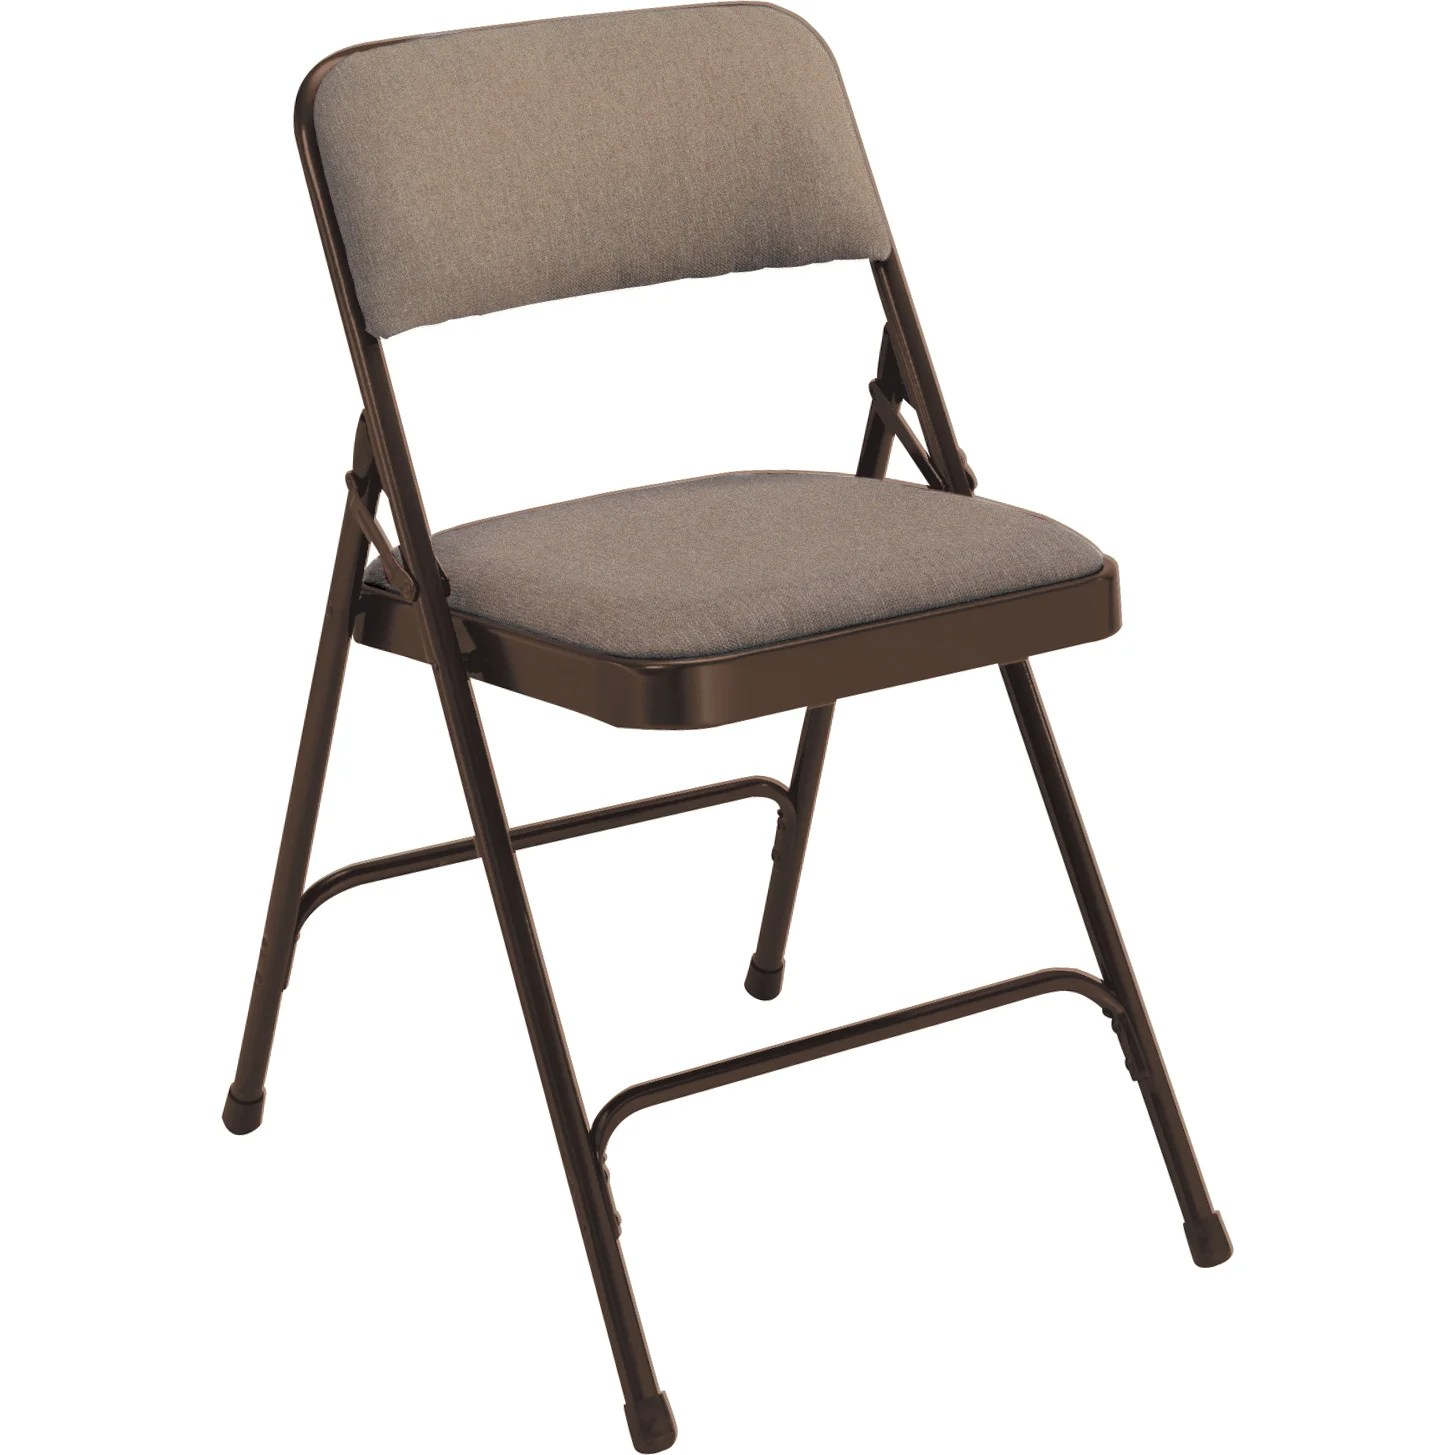 Upholstered Folding Chairs National Public Seating 2200 Series Upholstered Folding